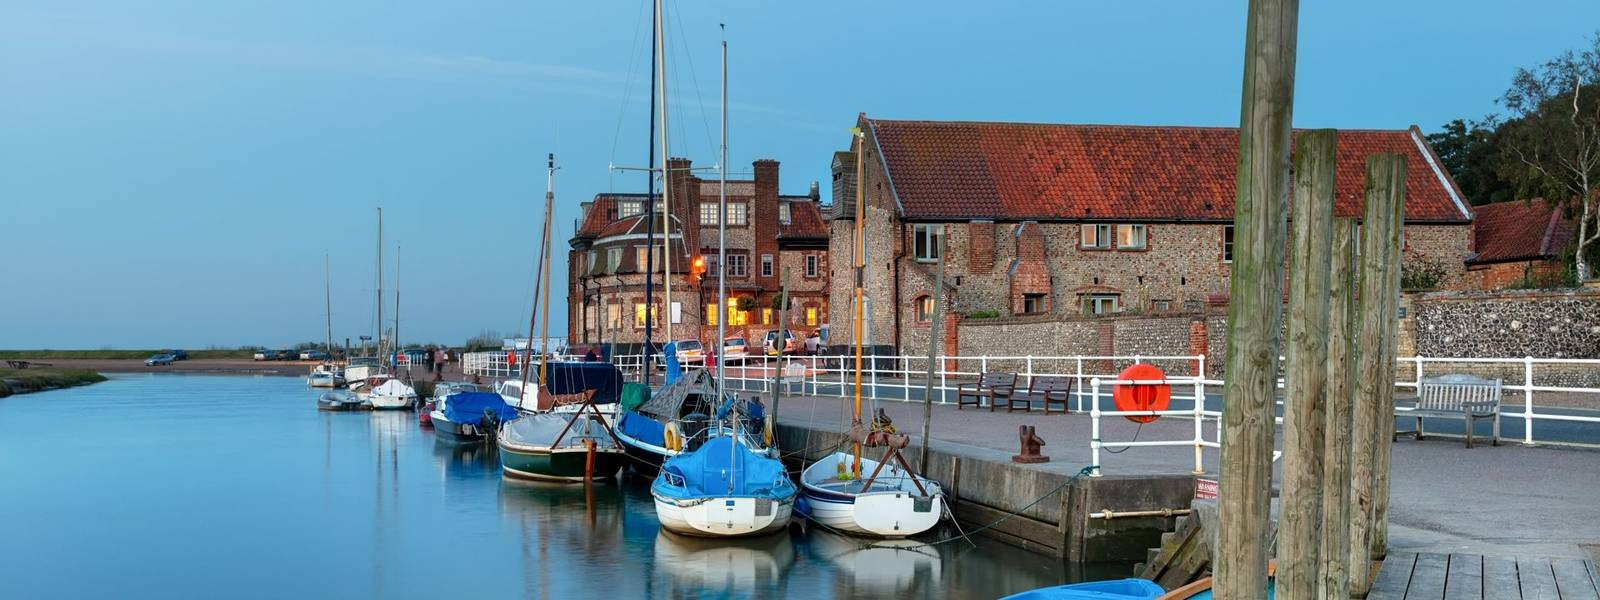 The Quay at Blakeney in Norfolk